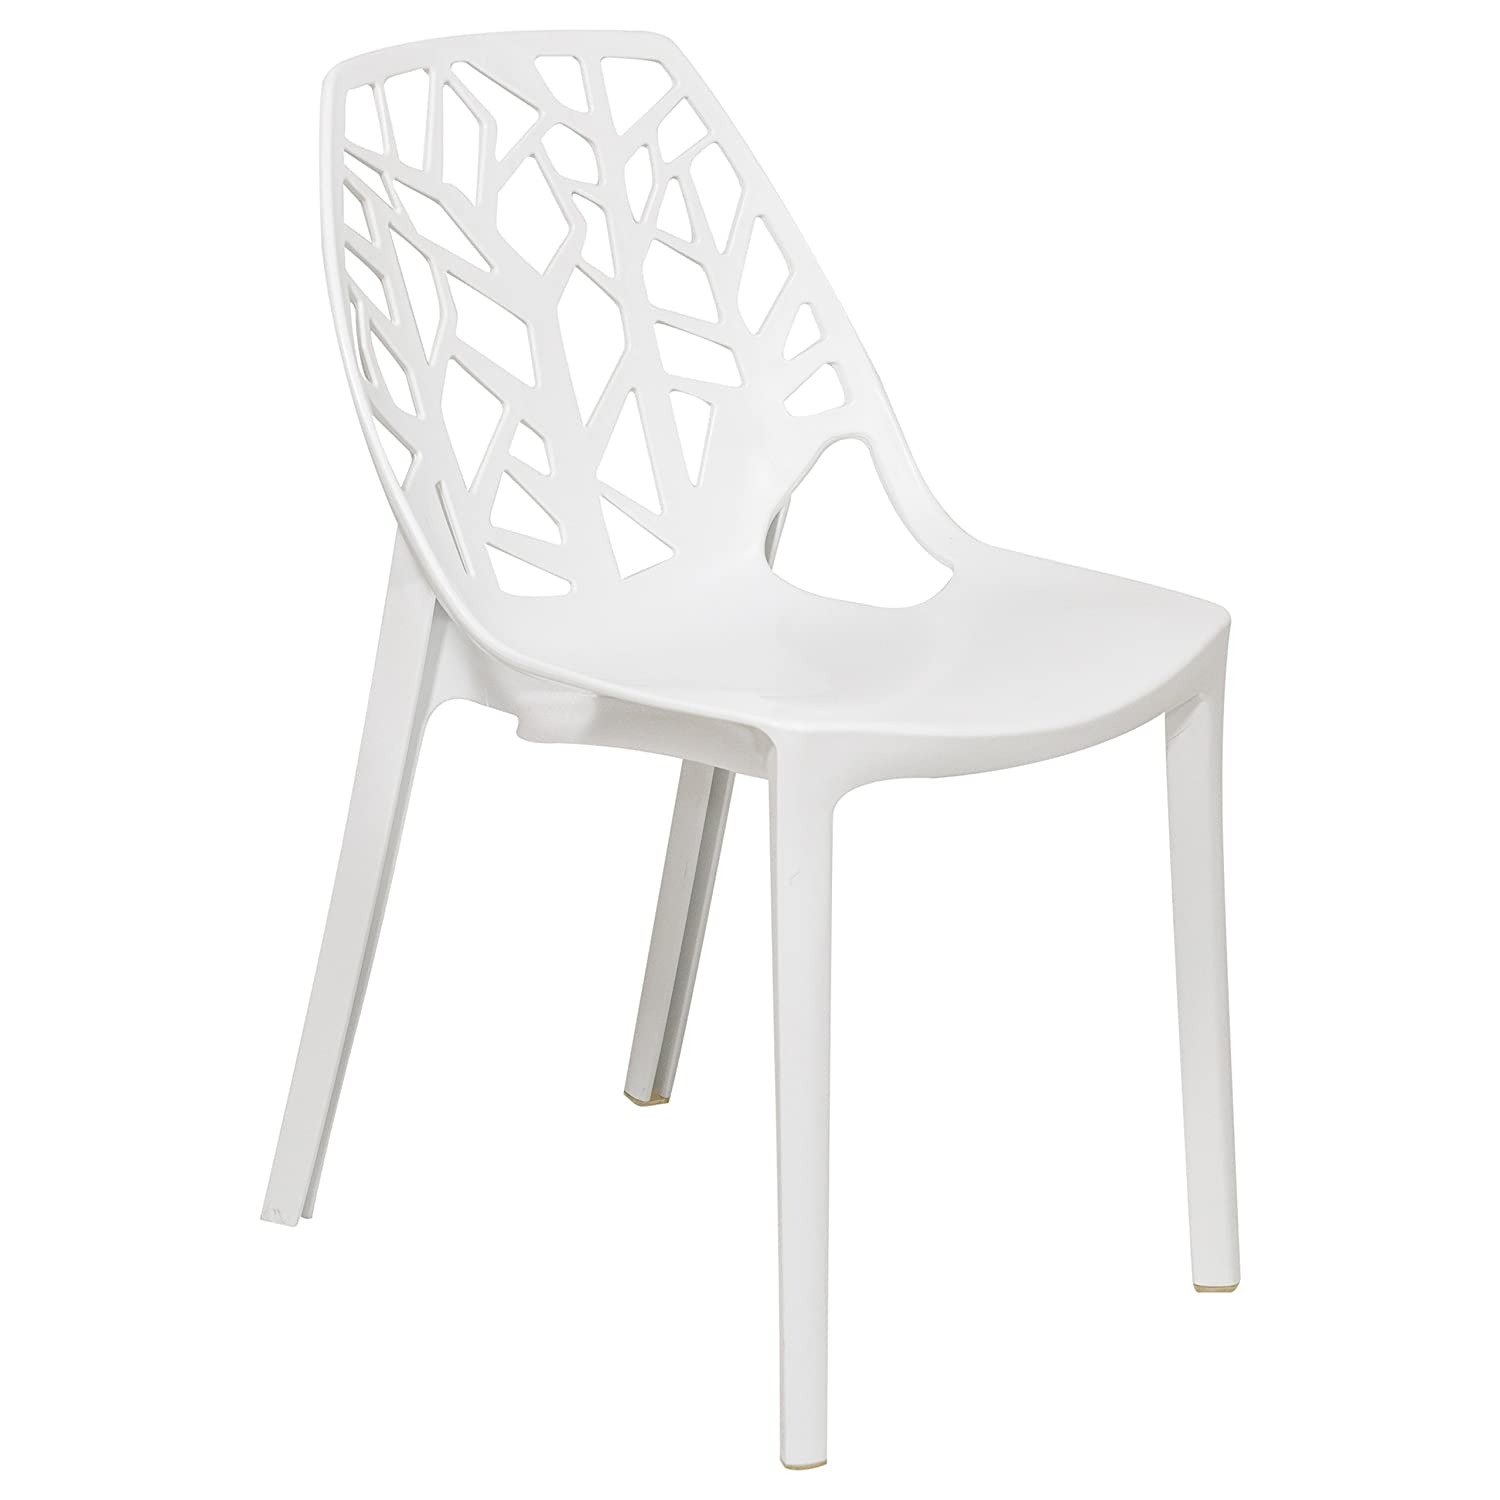 LeisureMod Caswell Cut-Out Tree Design Modern Dining Chairs Solid White